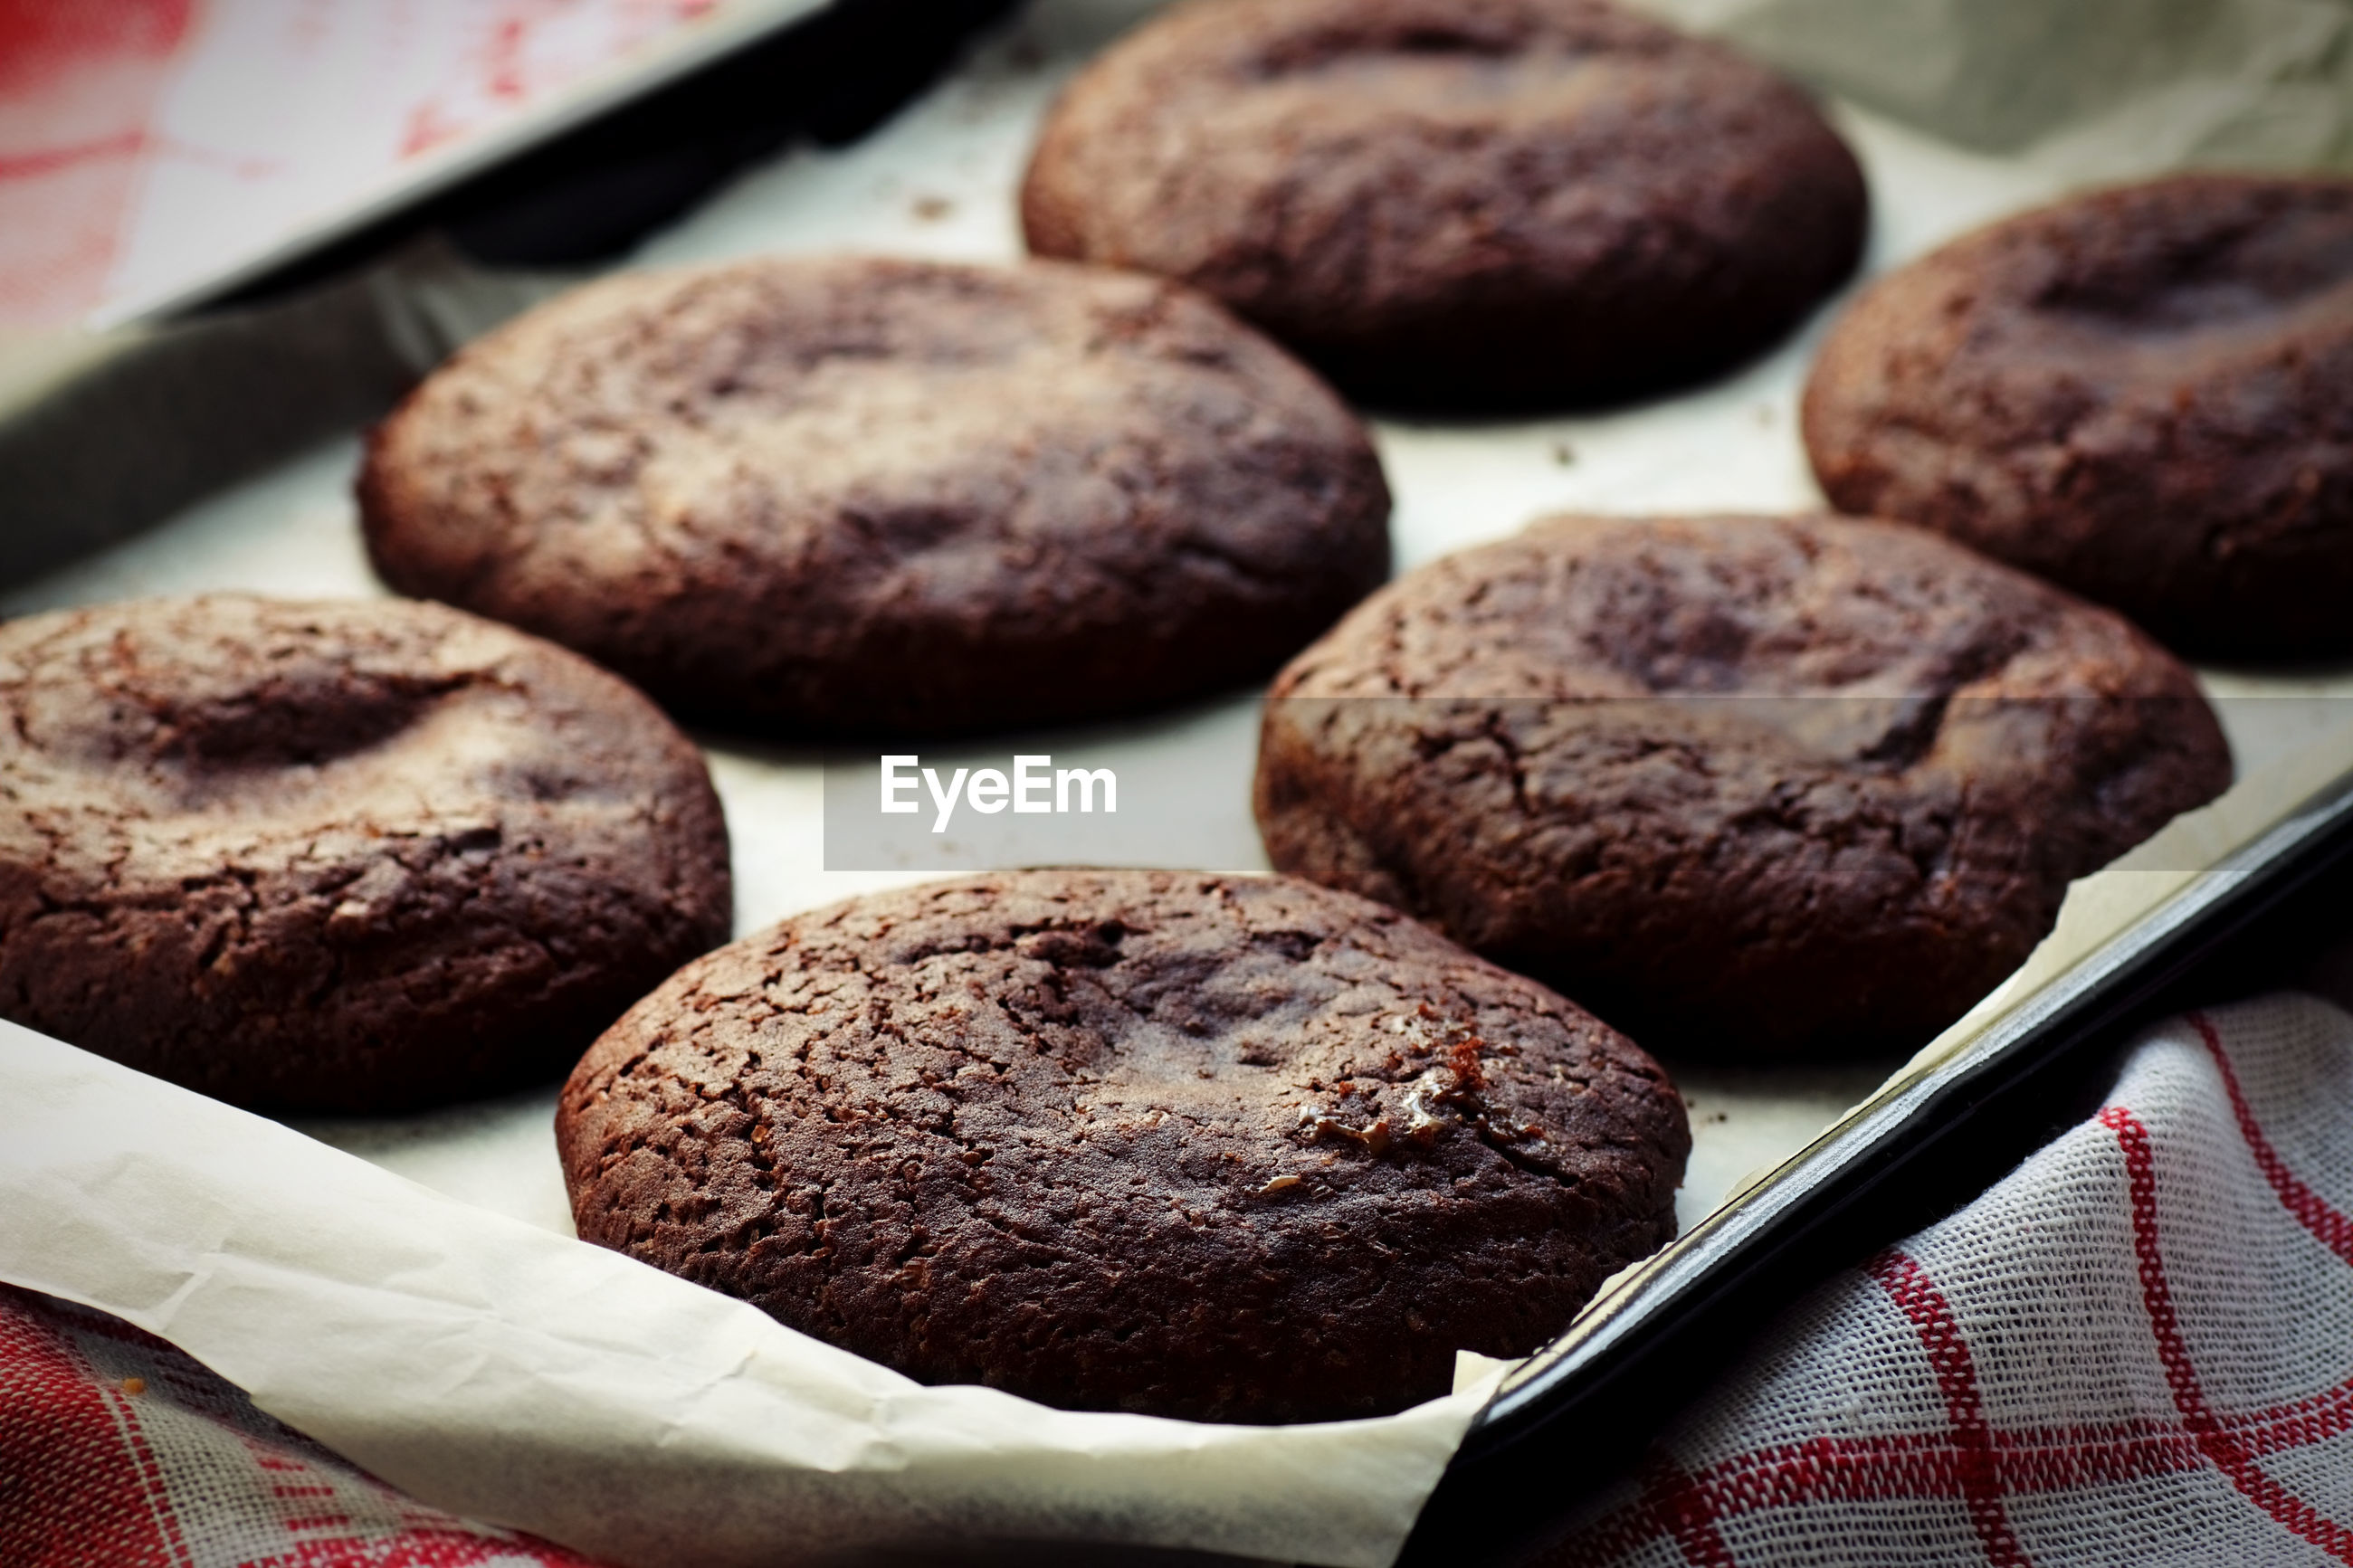 Close-up of chocolate cookies in baking sheet on table